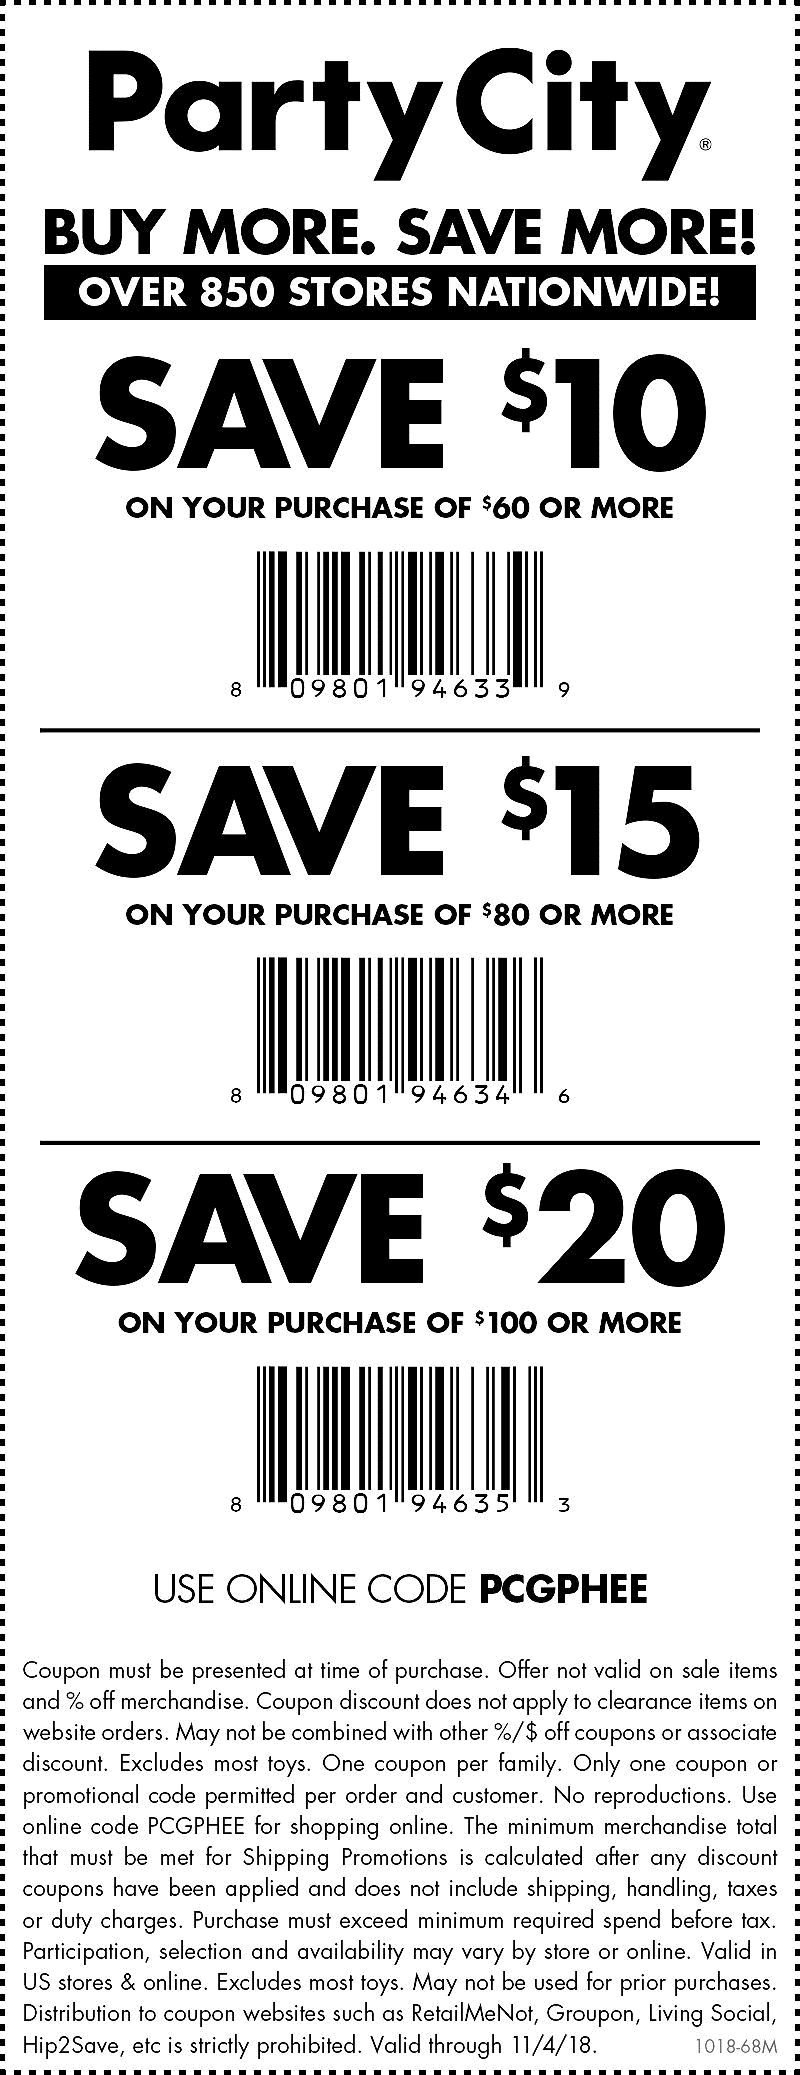 Party City Coupon November 2019 $10 off $60 at Party City, or online via promo code PCGPHEE